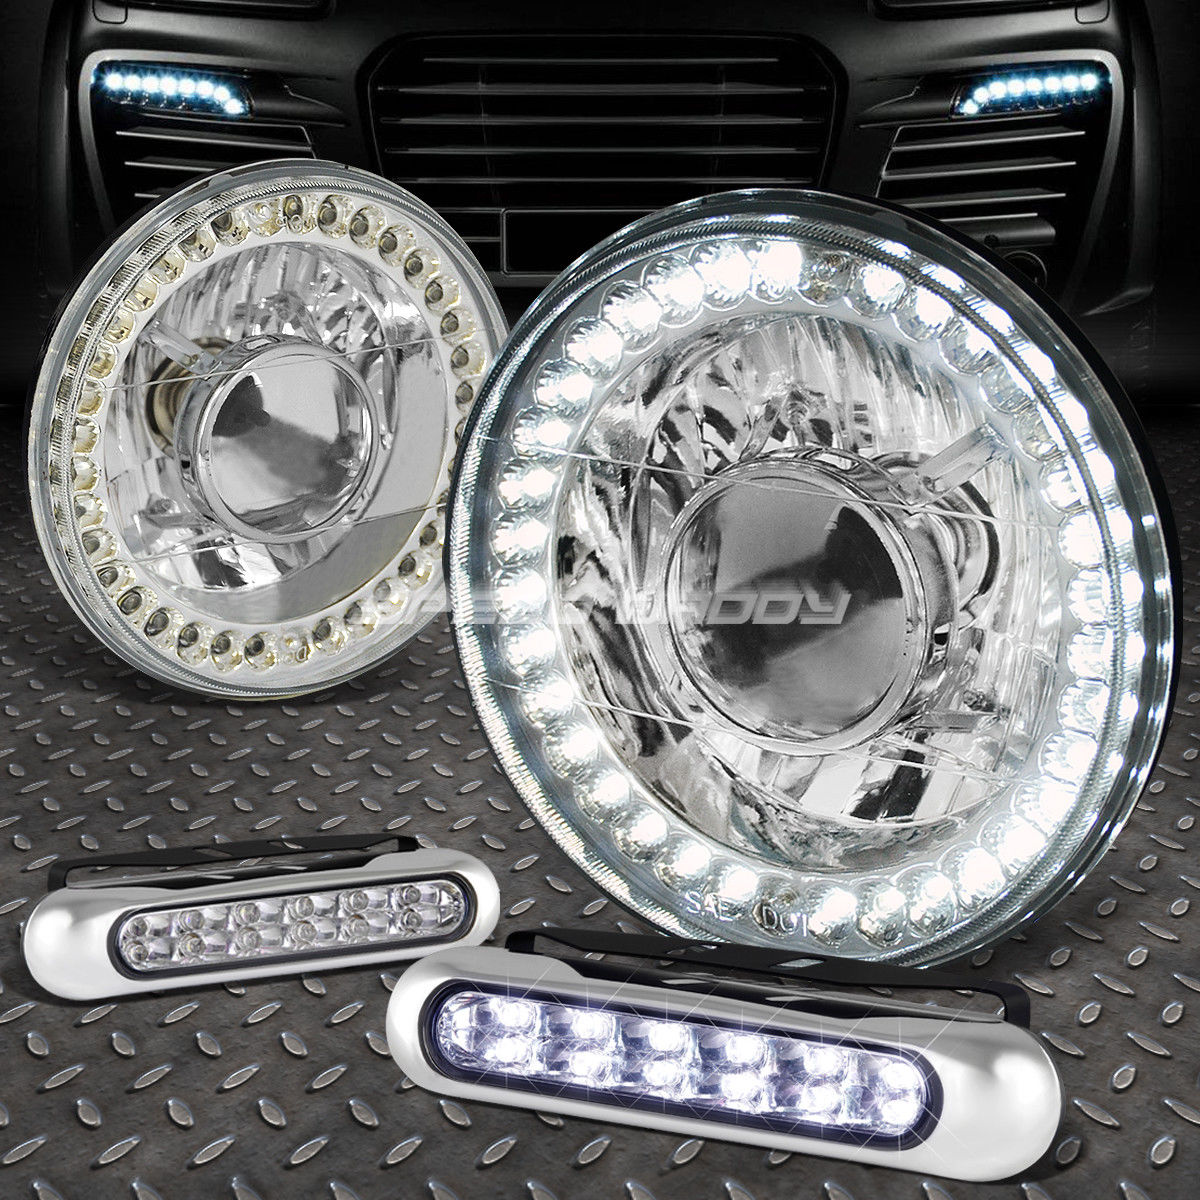 USフォグライト 7x7 ROUND CHROME PROJECTOR LED HEADLIGHT+12 LED GRILL FOG LIGHT FOR BRONCO/DART 7x7 ROUND CHROME PROJECTOR LEDヘッドライト+ブロンコ/ダーツ用LEDグリルフォグライト12